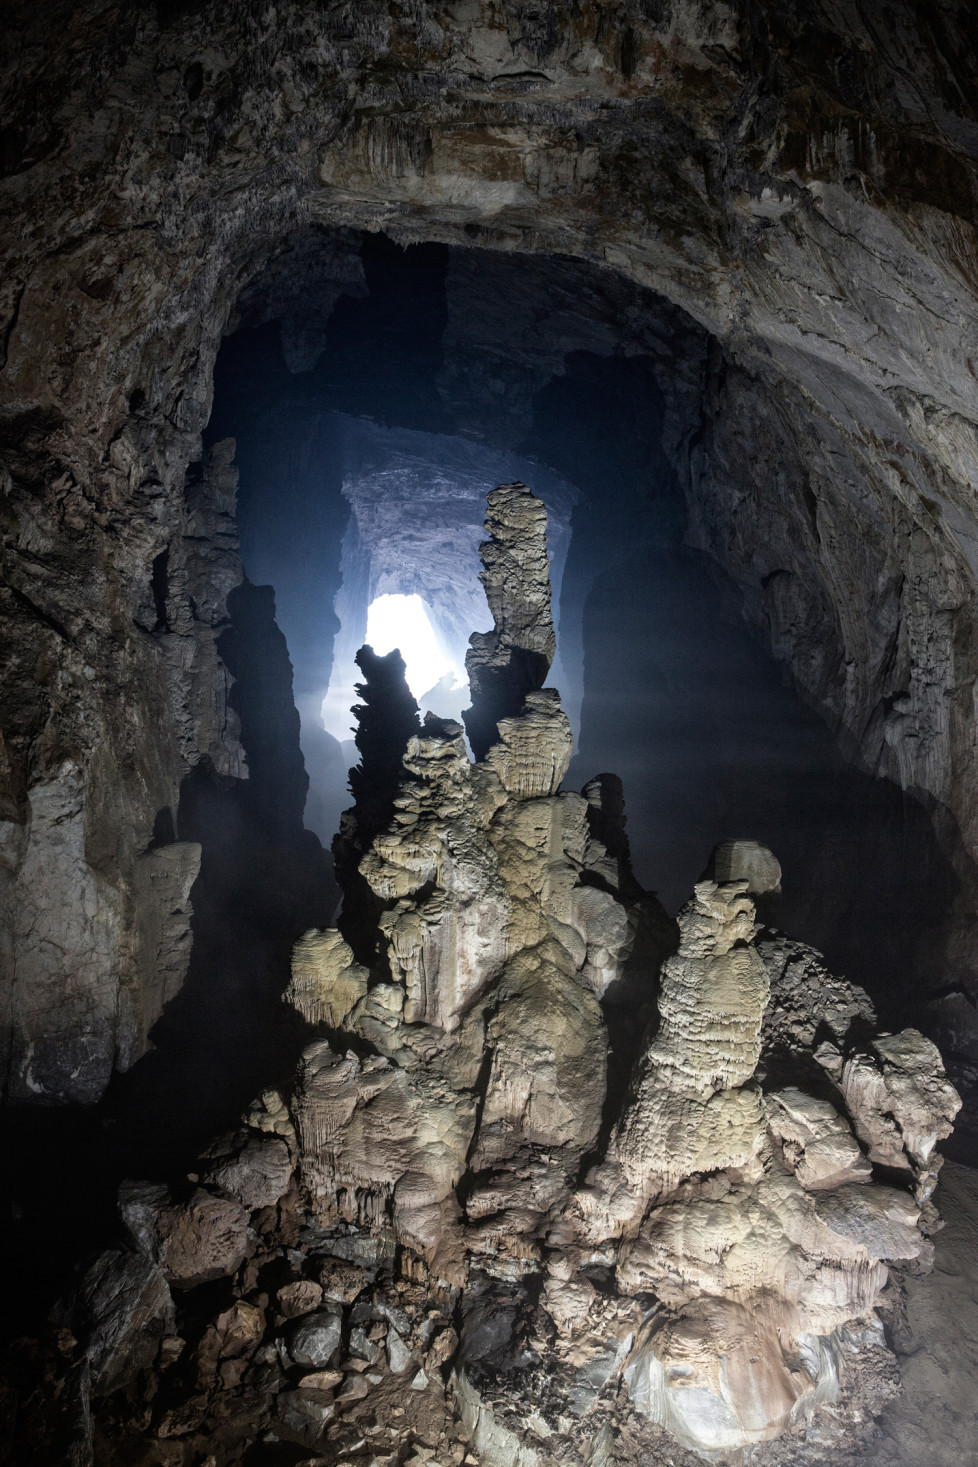 Biggest Stalagmite in the world (80m) inside Son Doong Cave. Foto: Tanja Demarmels